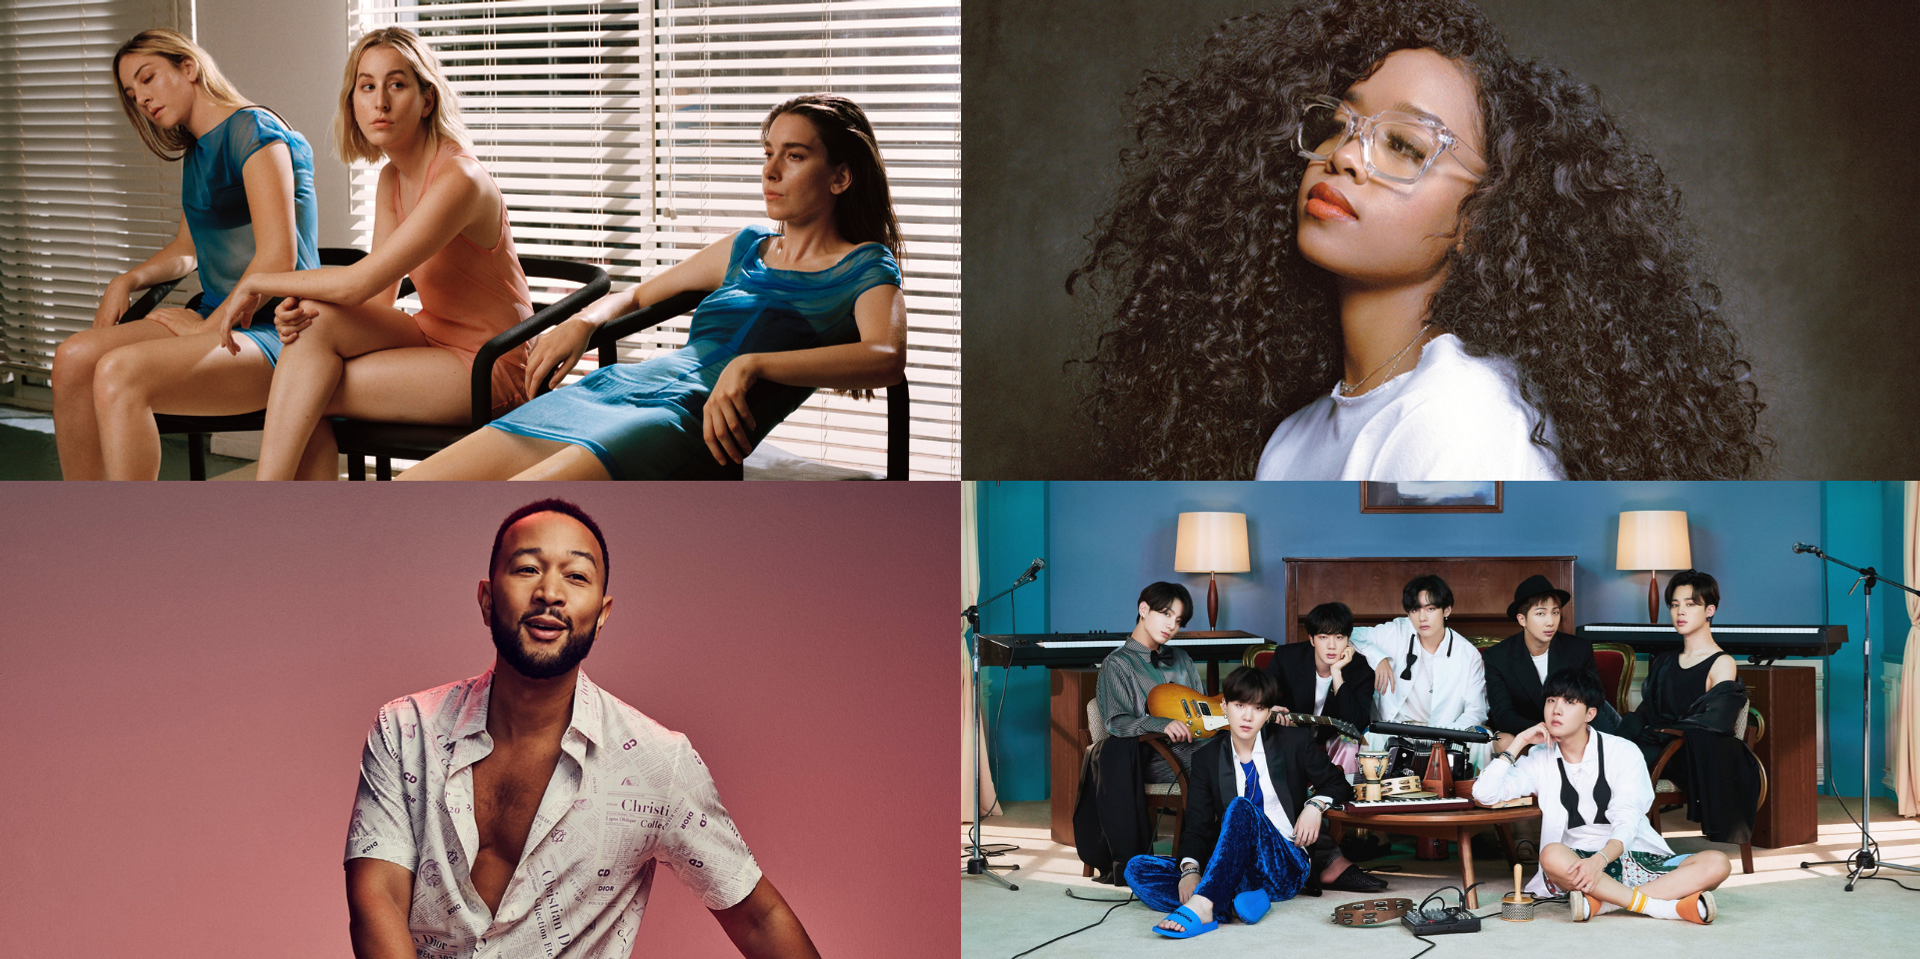 BTS, HAIM, H.E.R., John Legend, and more to perform at the Recording Academy's Music on a Mission virtual concert